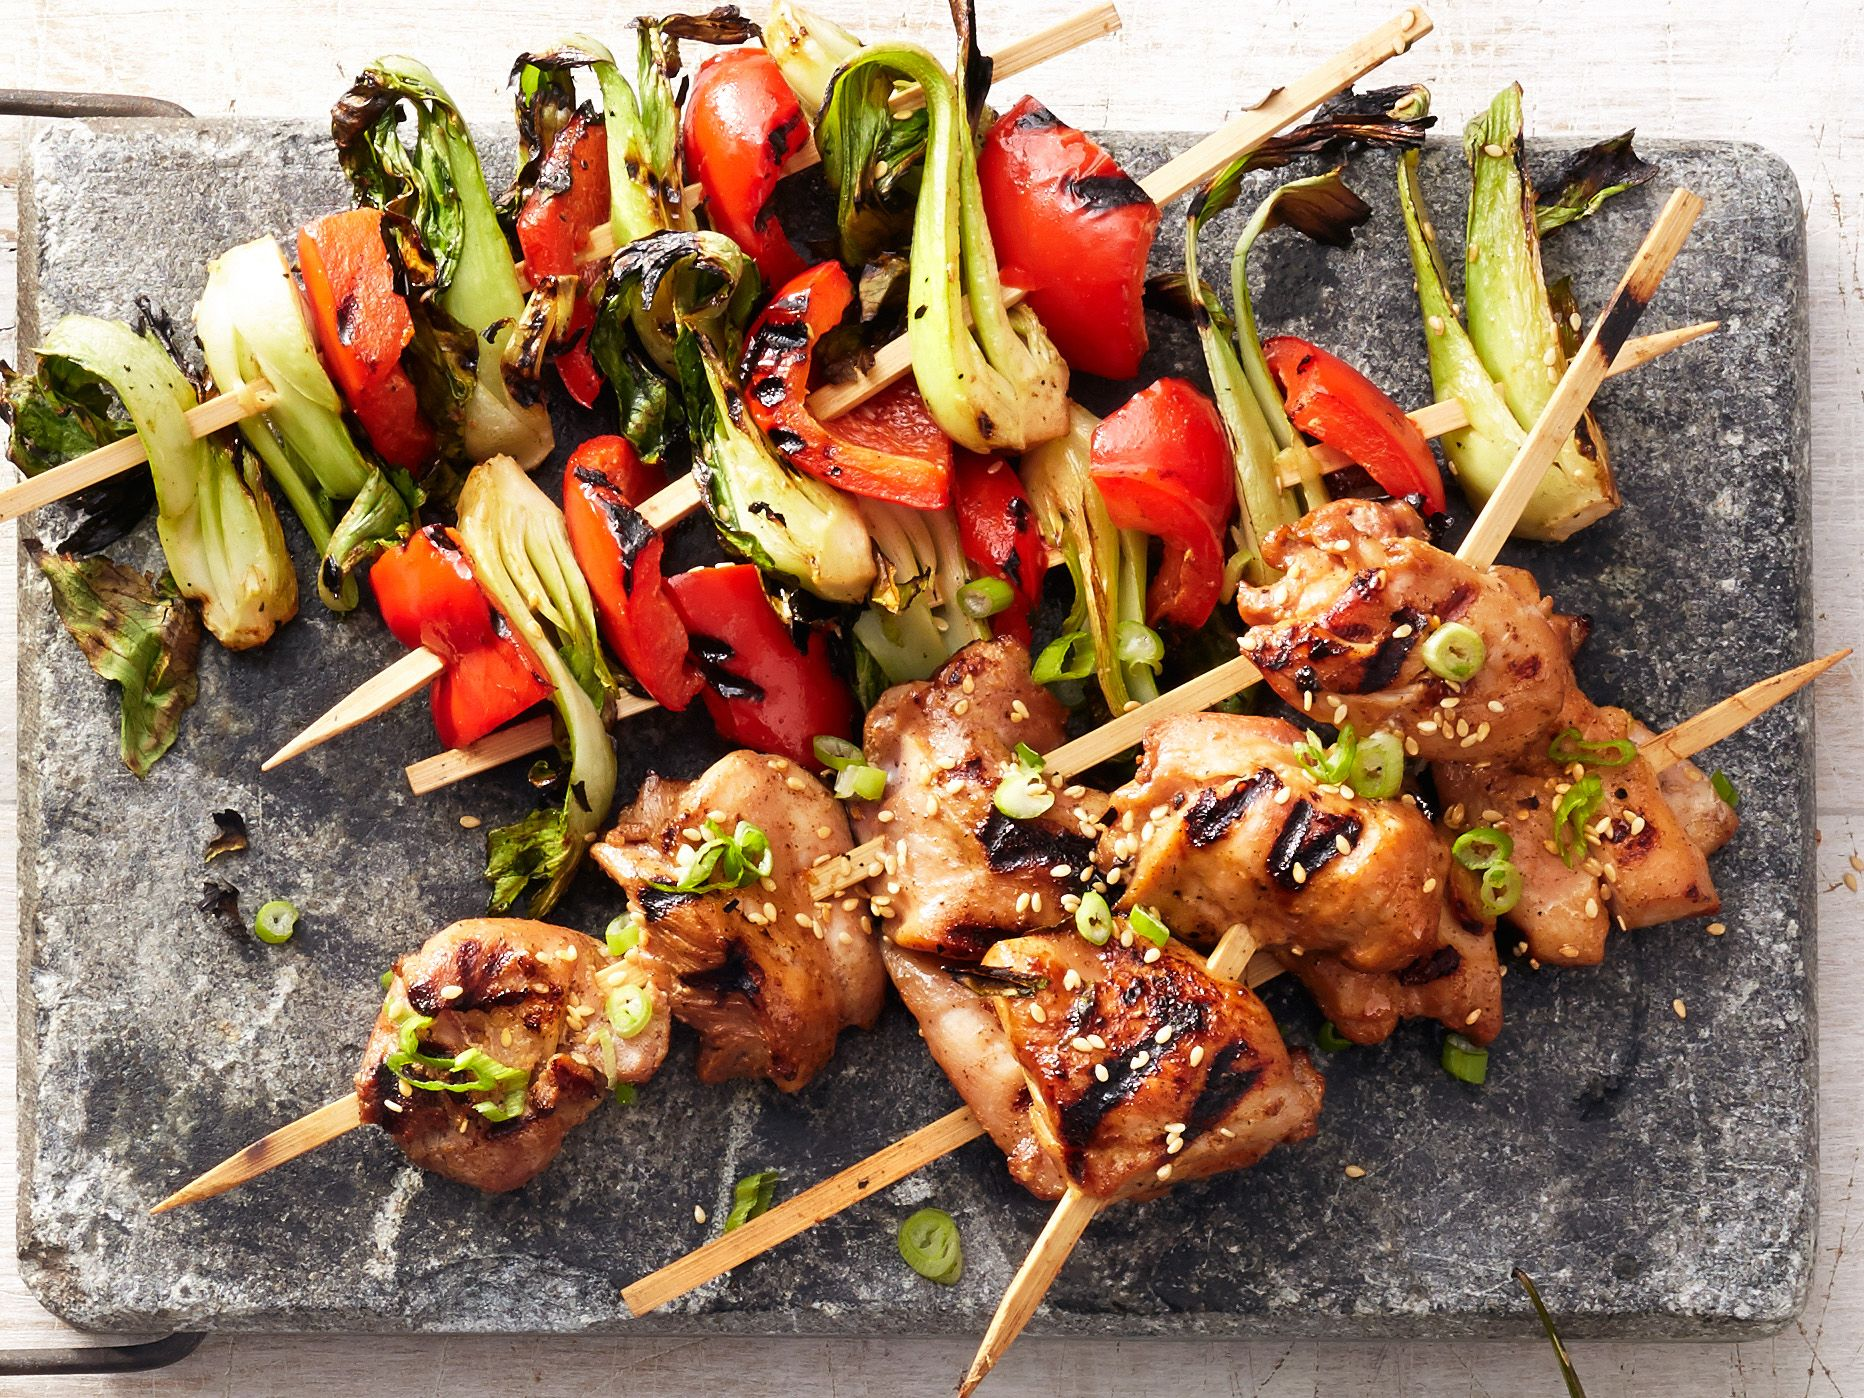 Hoisin chicken and bok choy kebabs recipe kebabs recipes and food hoisin chicken and bok choy kebabs forumfinder Images